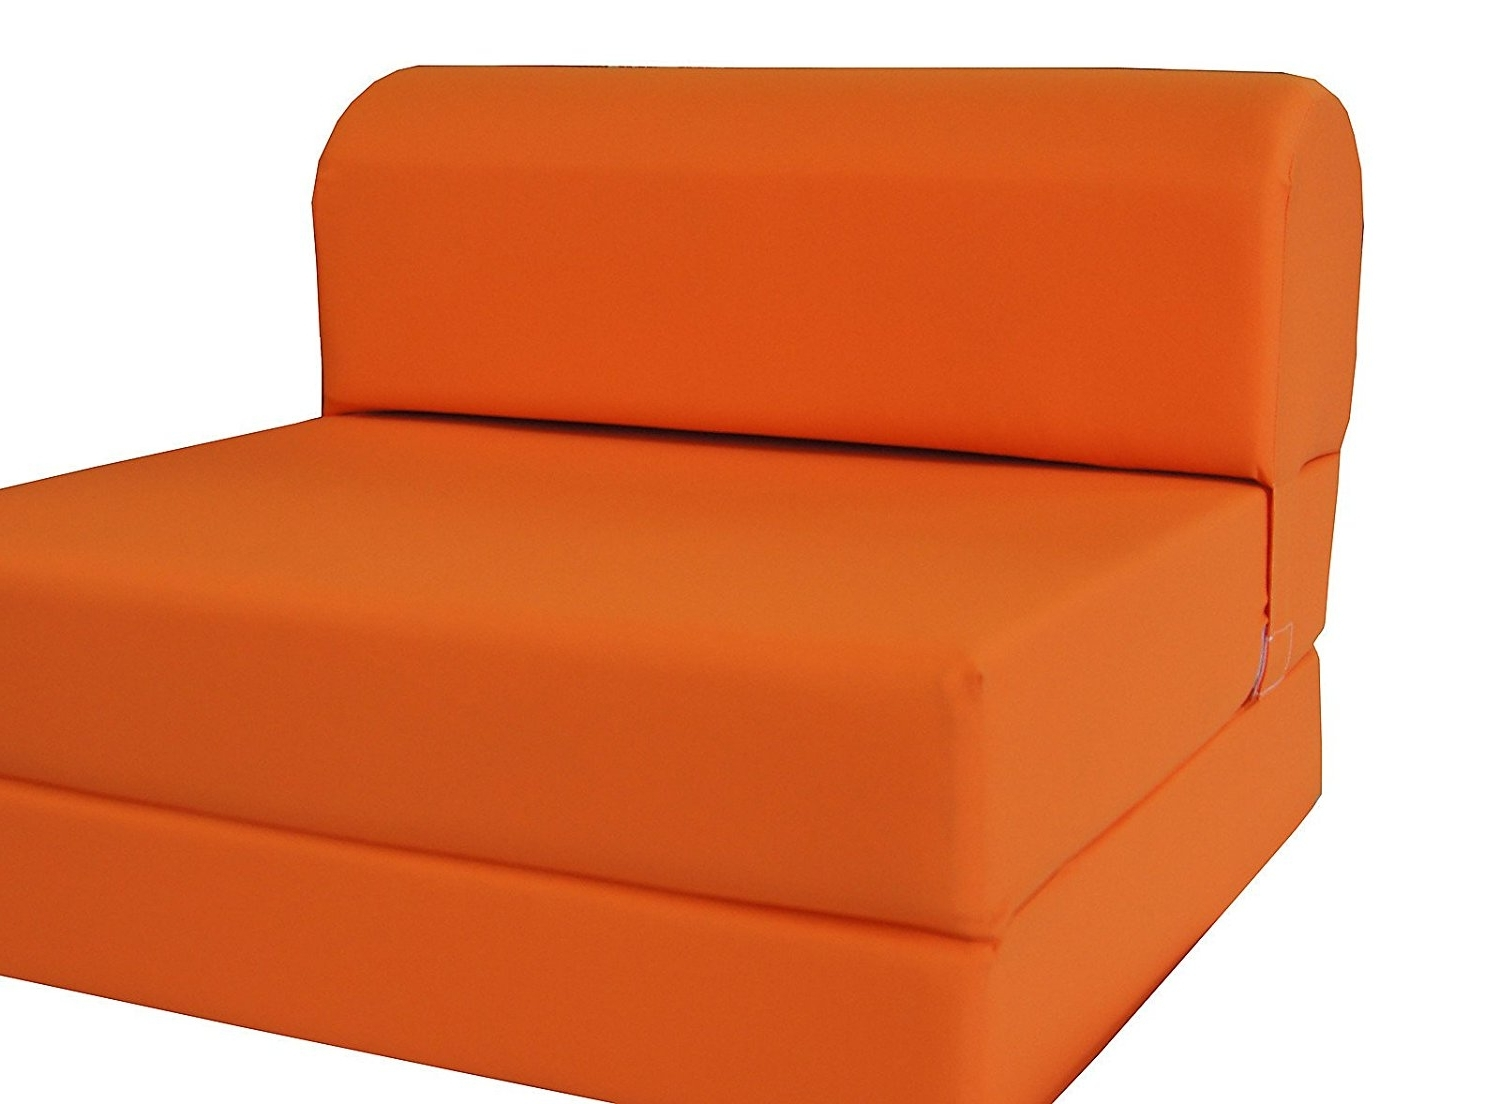 "Fold Up Sofa Chairs With Regard To Most Recently Released Amazon: Orange Sleeper Chair Folding Foam Bed Sized 6"" Thick X (View 9 of 15)"